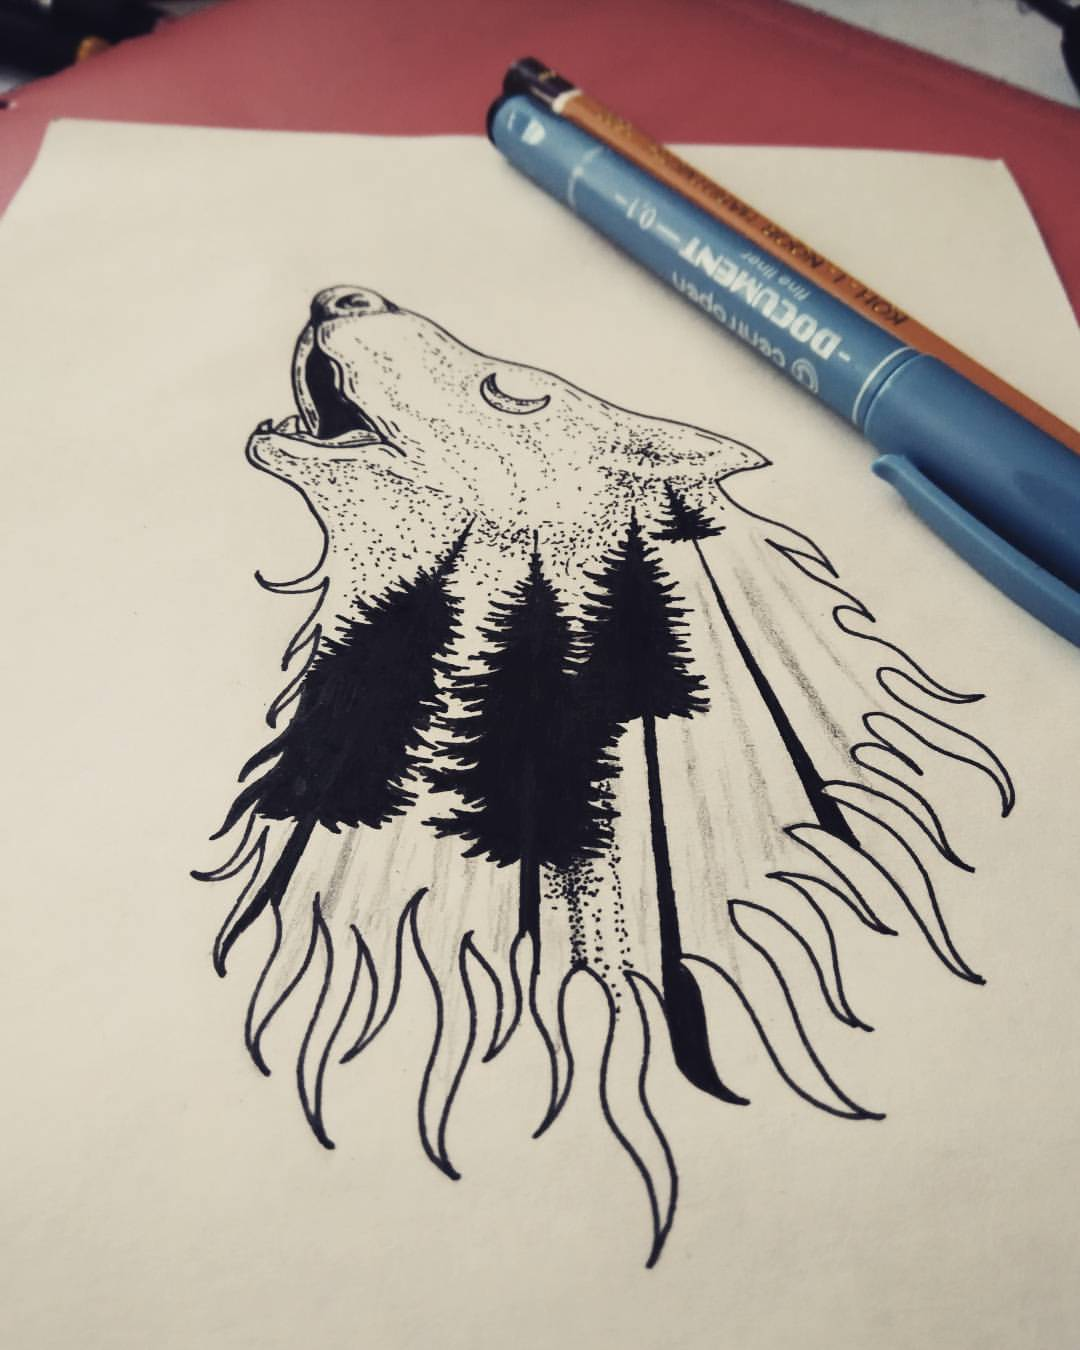 Howling wolf contour with moonlight forest pattern tattoo design